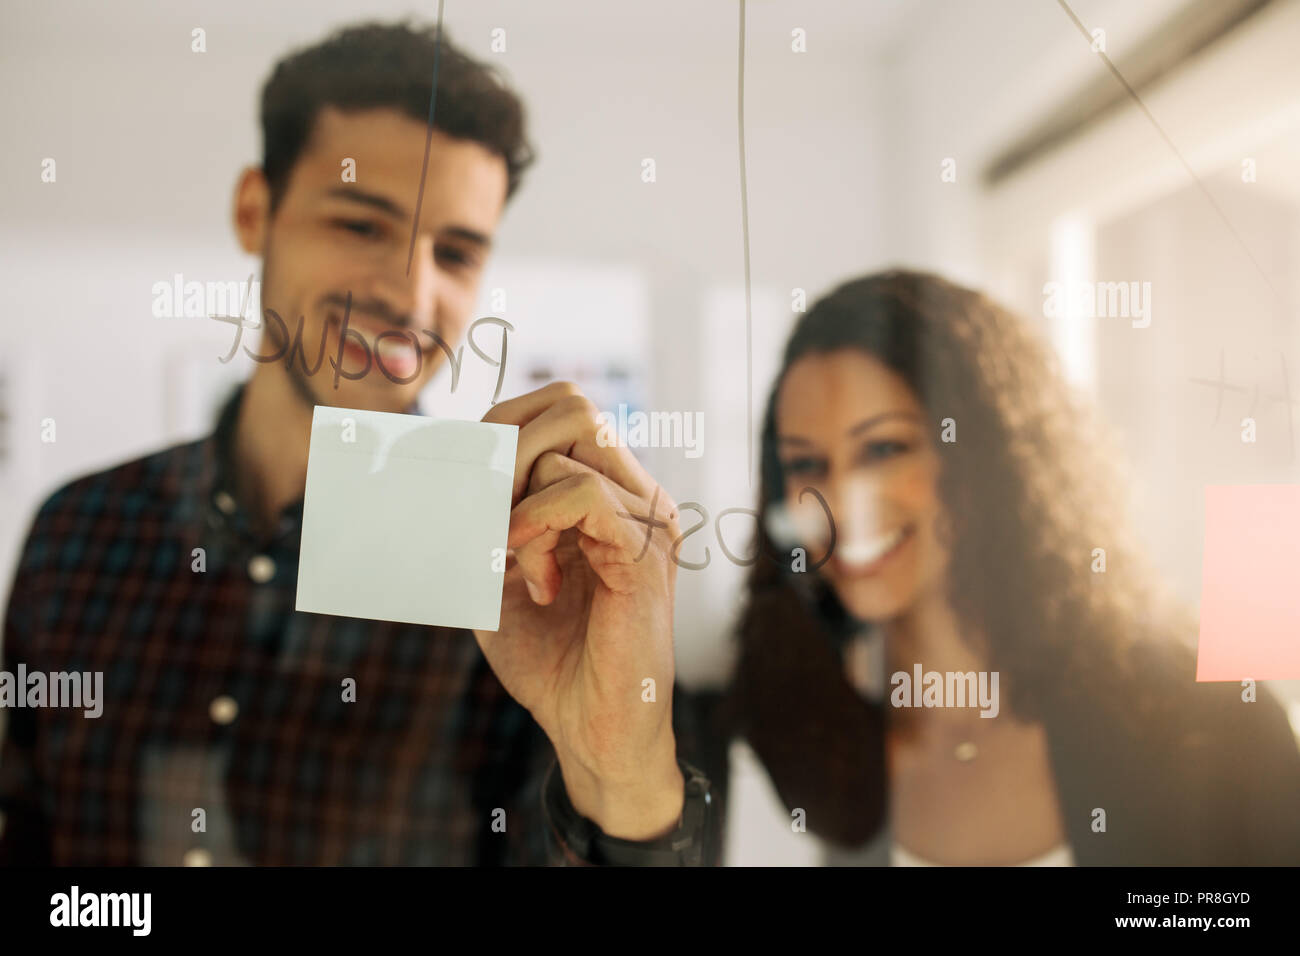 Business couple writing on sticky notes pasted on transparent glass wall in office. Office colleagues discussing business ideas and plans on a transpa - Stock Image